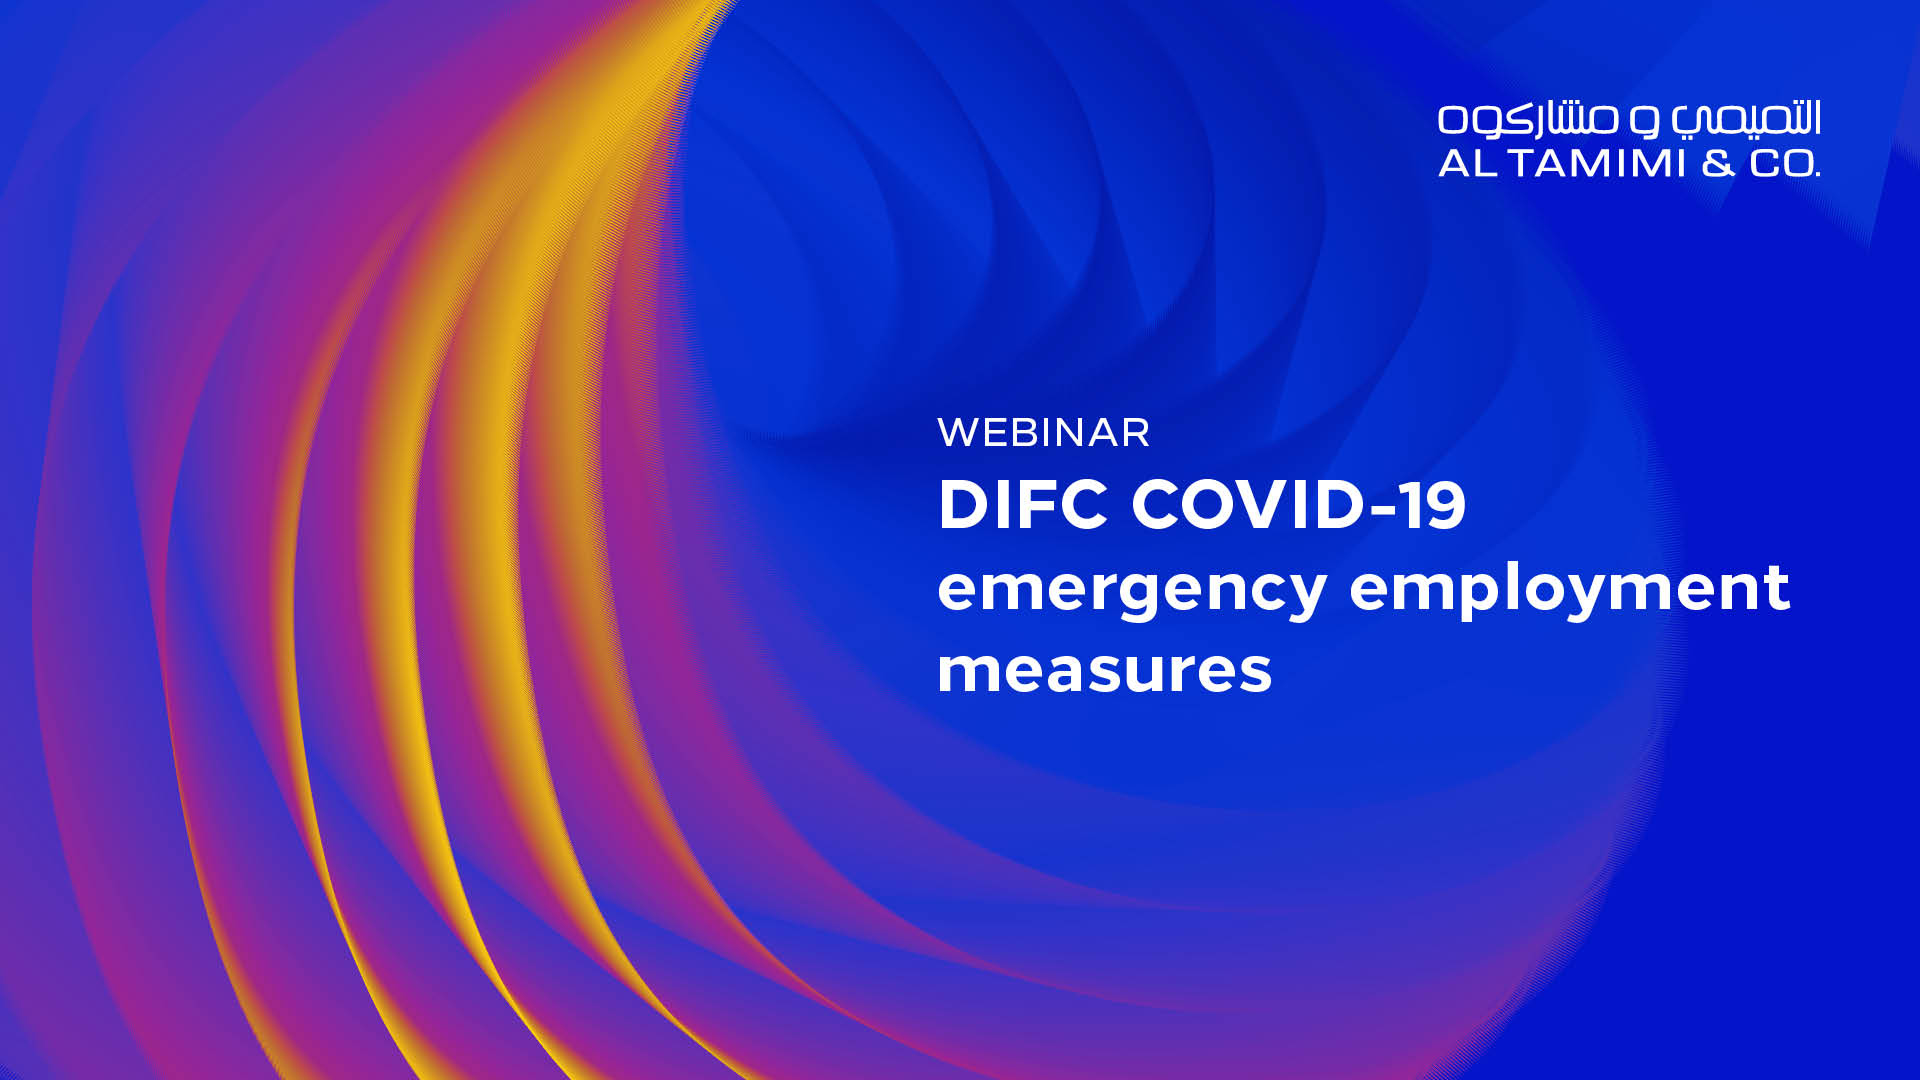 DIFC COVID-19 emergency employment measures